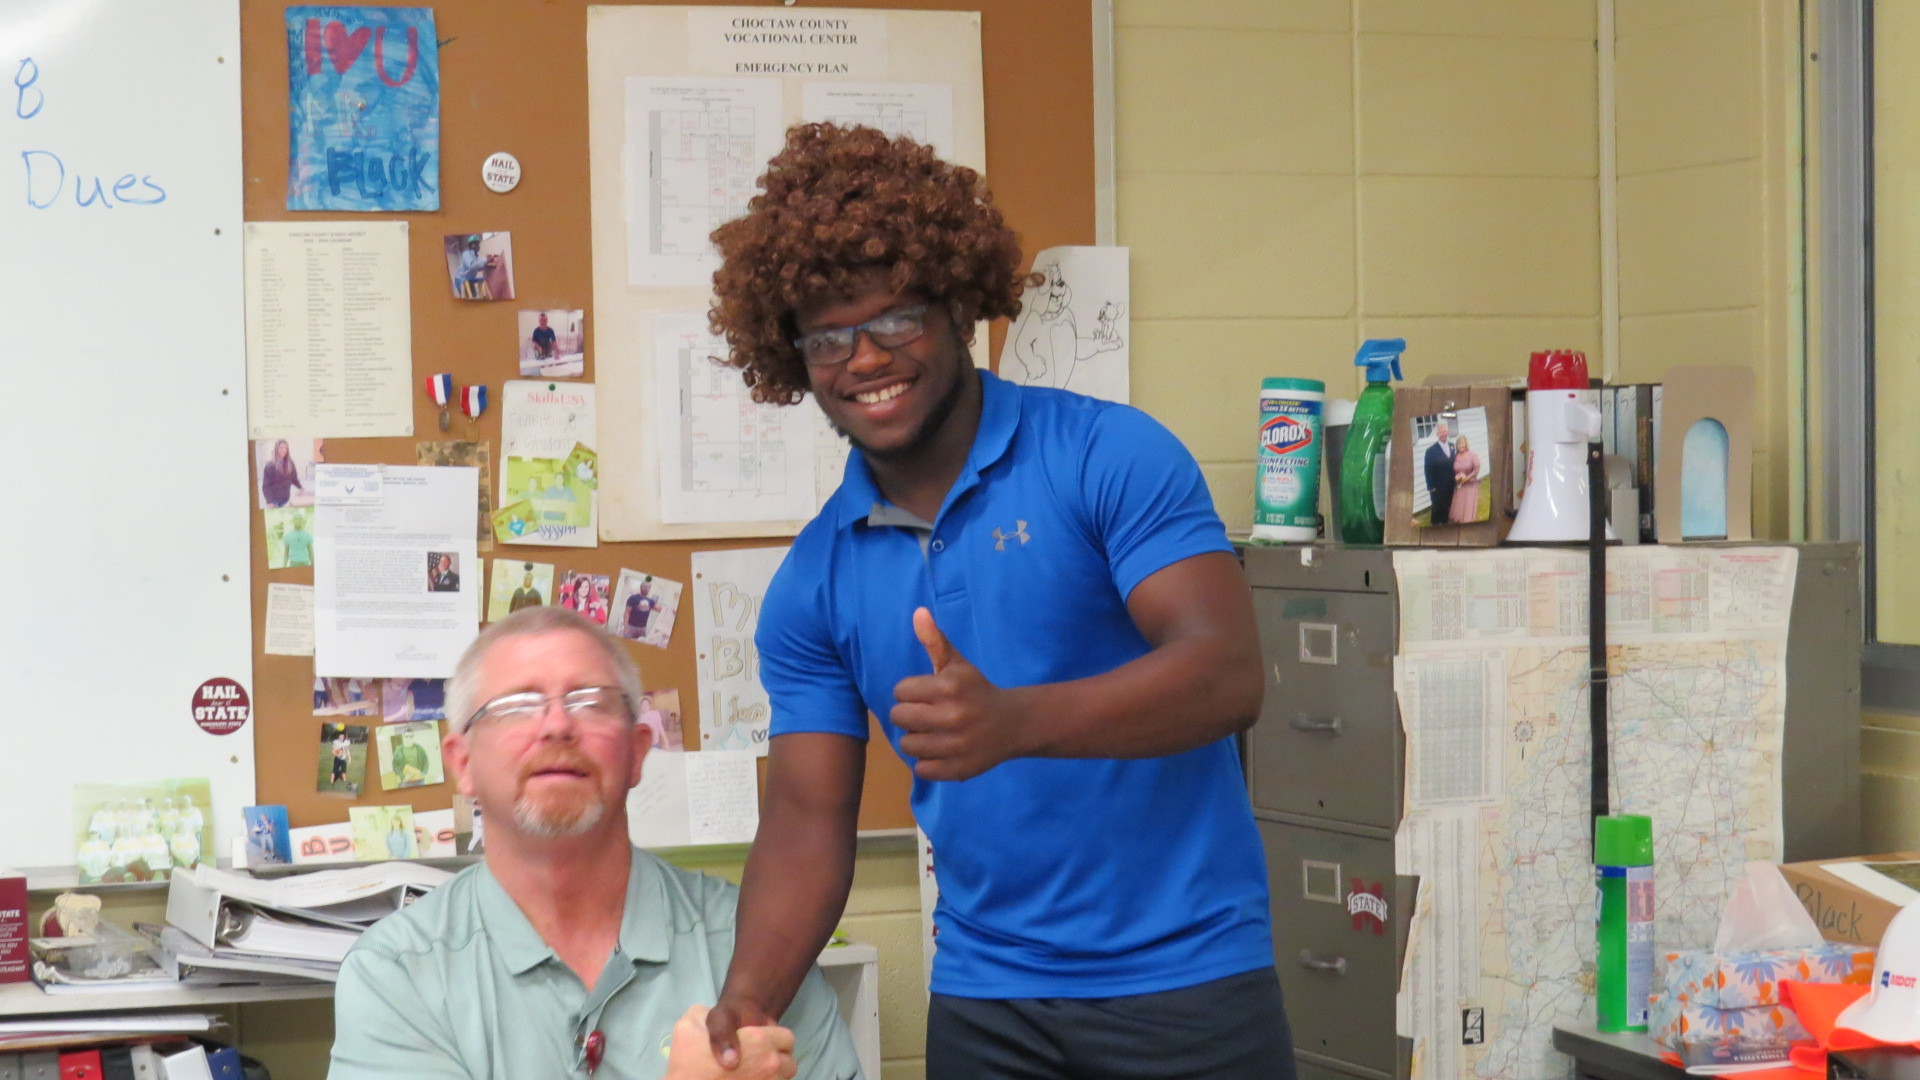 Tyler and mr. black